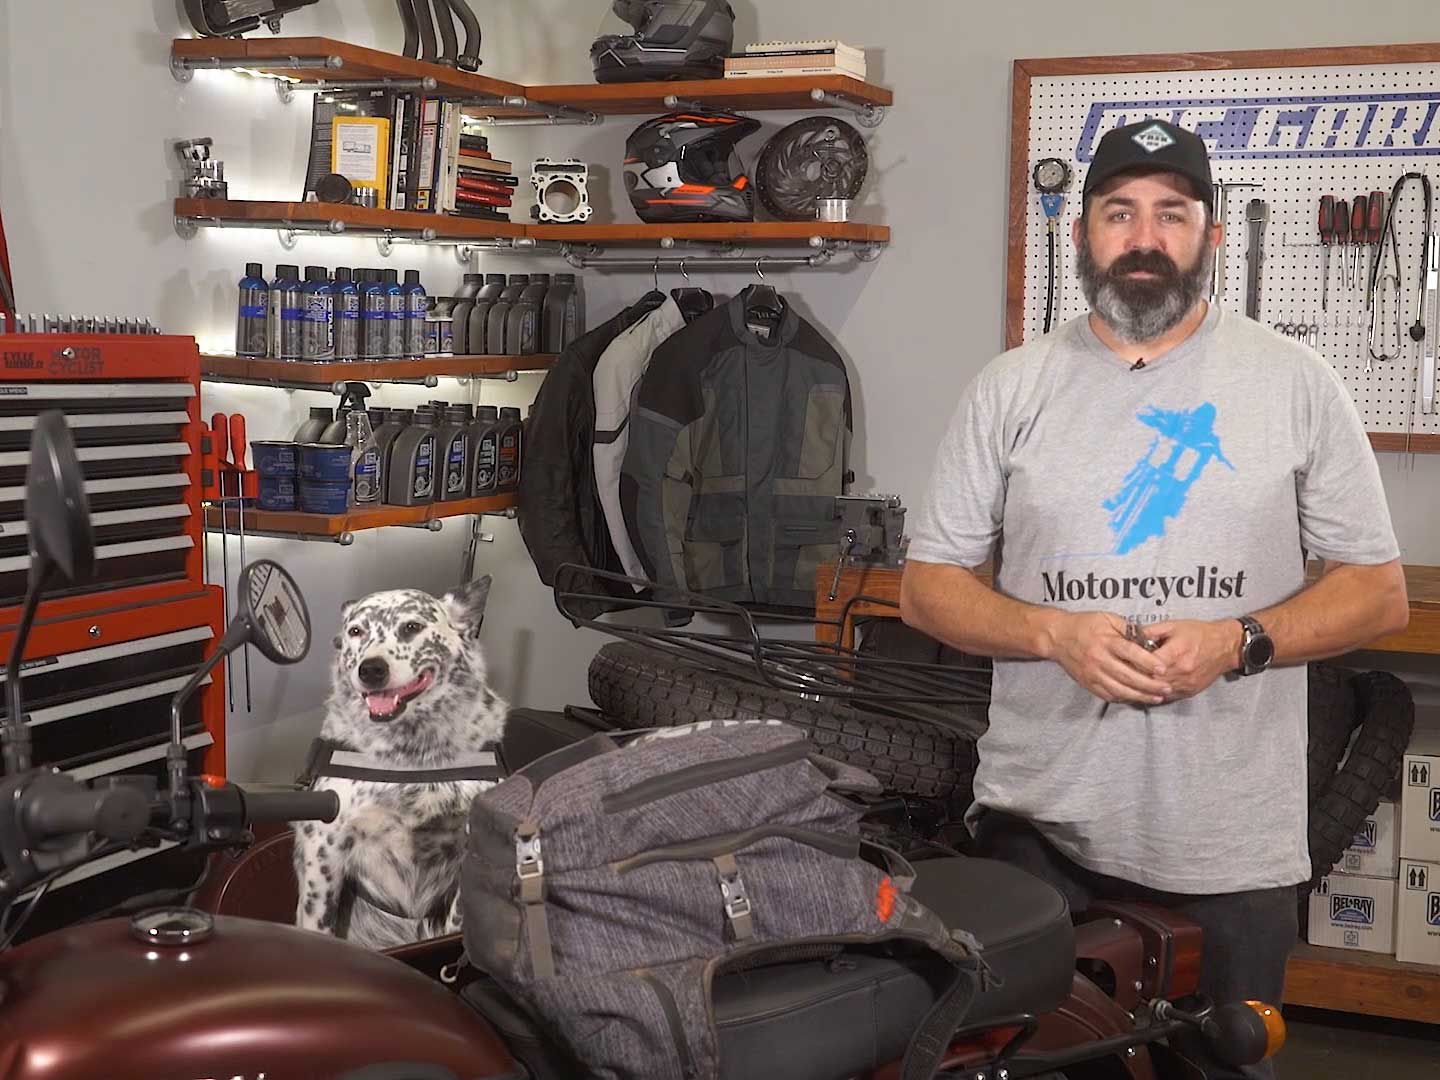 We share our must-have tool kit essentials when we're off in the boonies riding adventure-touring bikes.